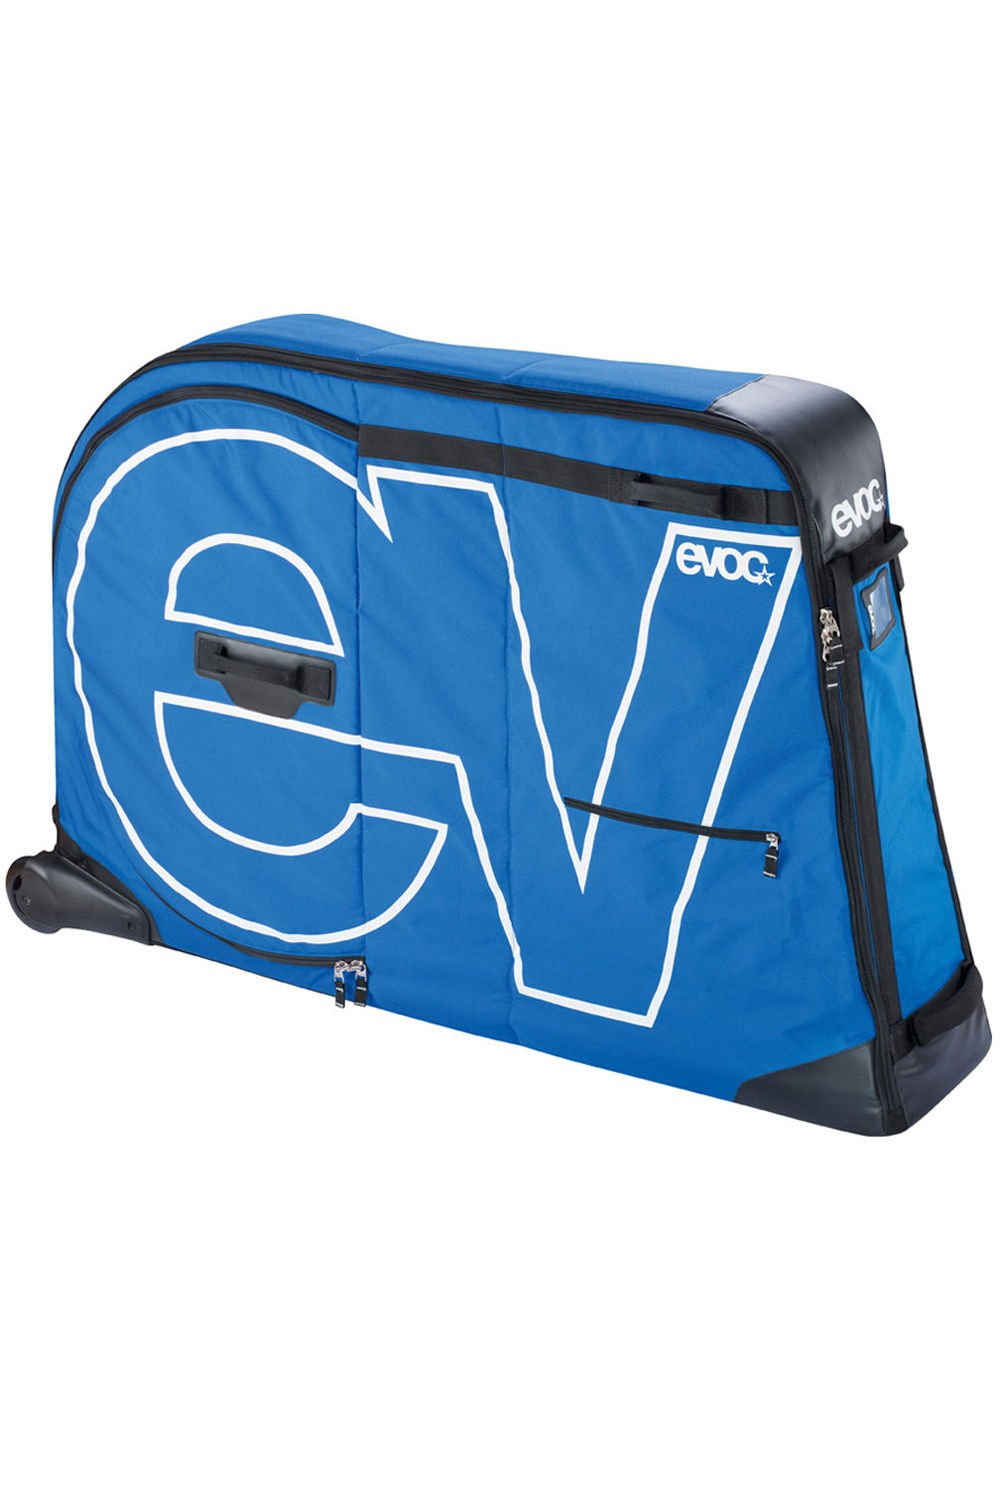 Evoc Bike Travel Bag Blue, One Size by Evoc (Image #1)